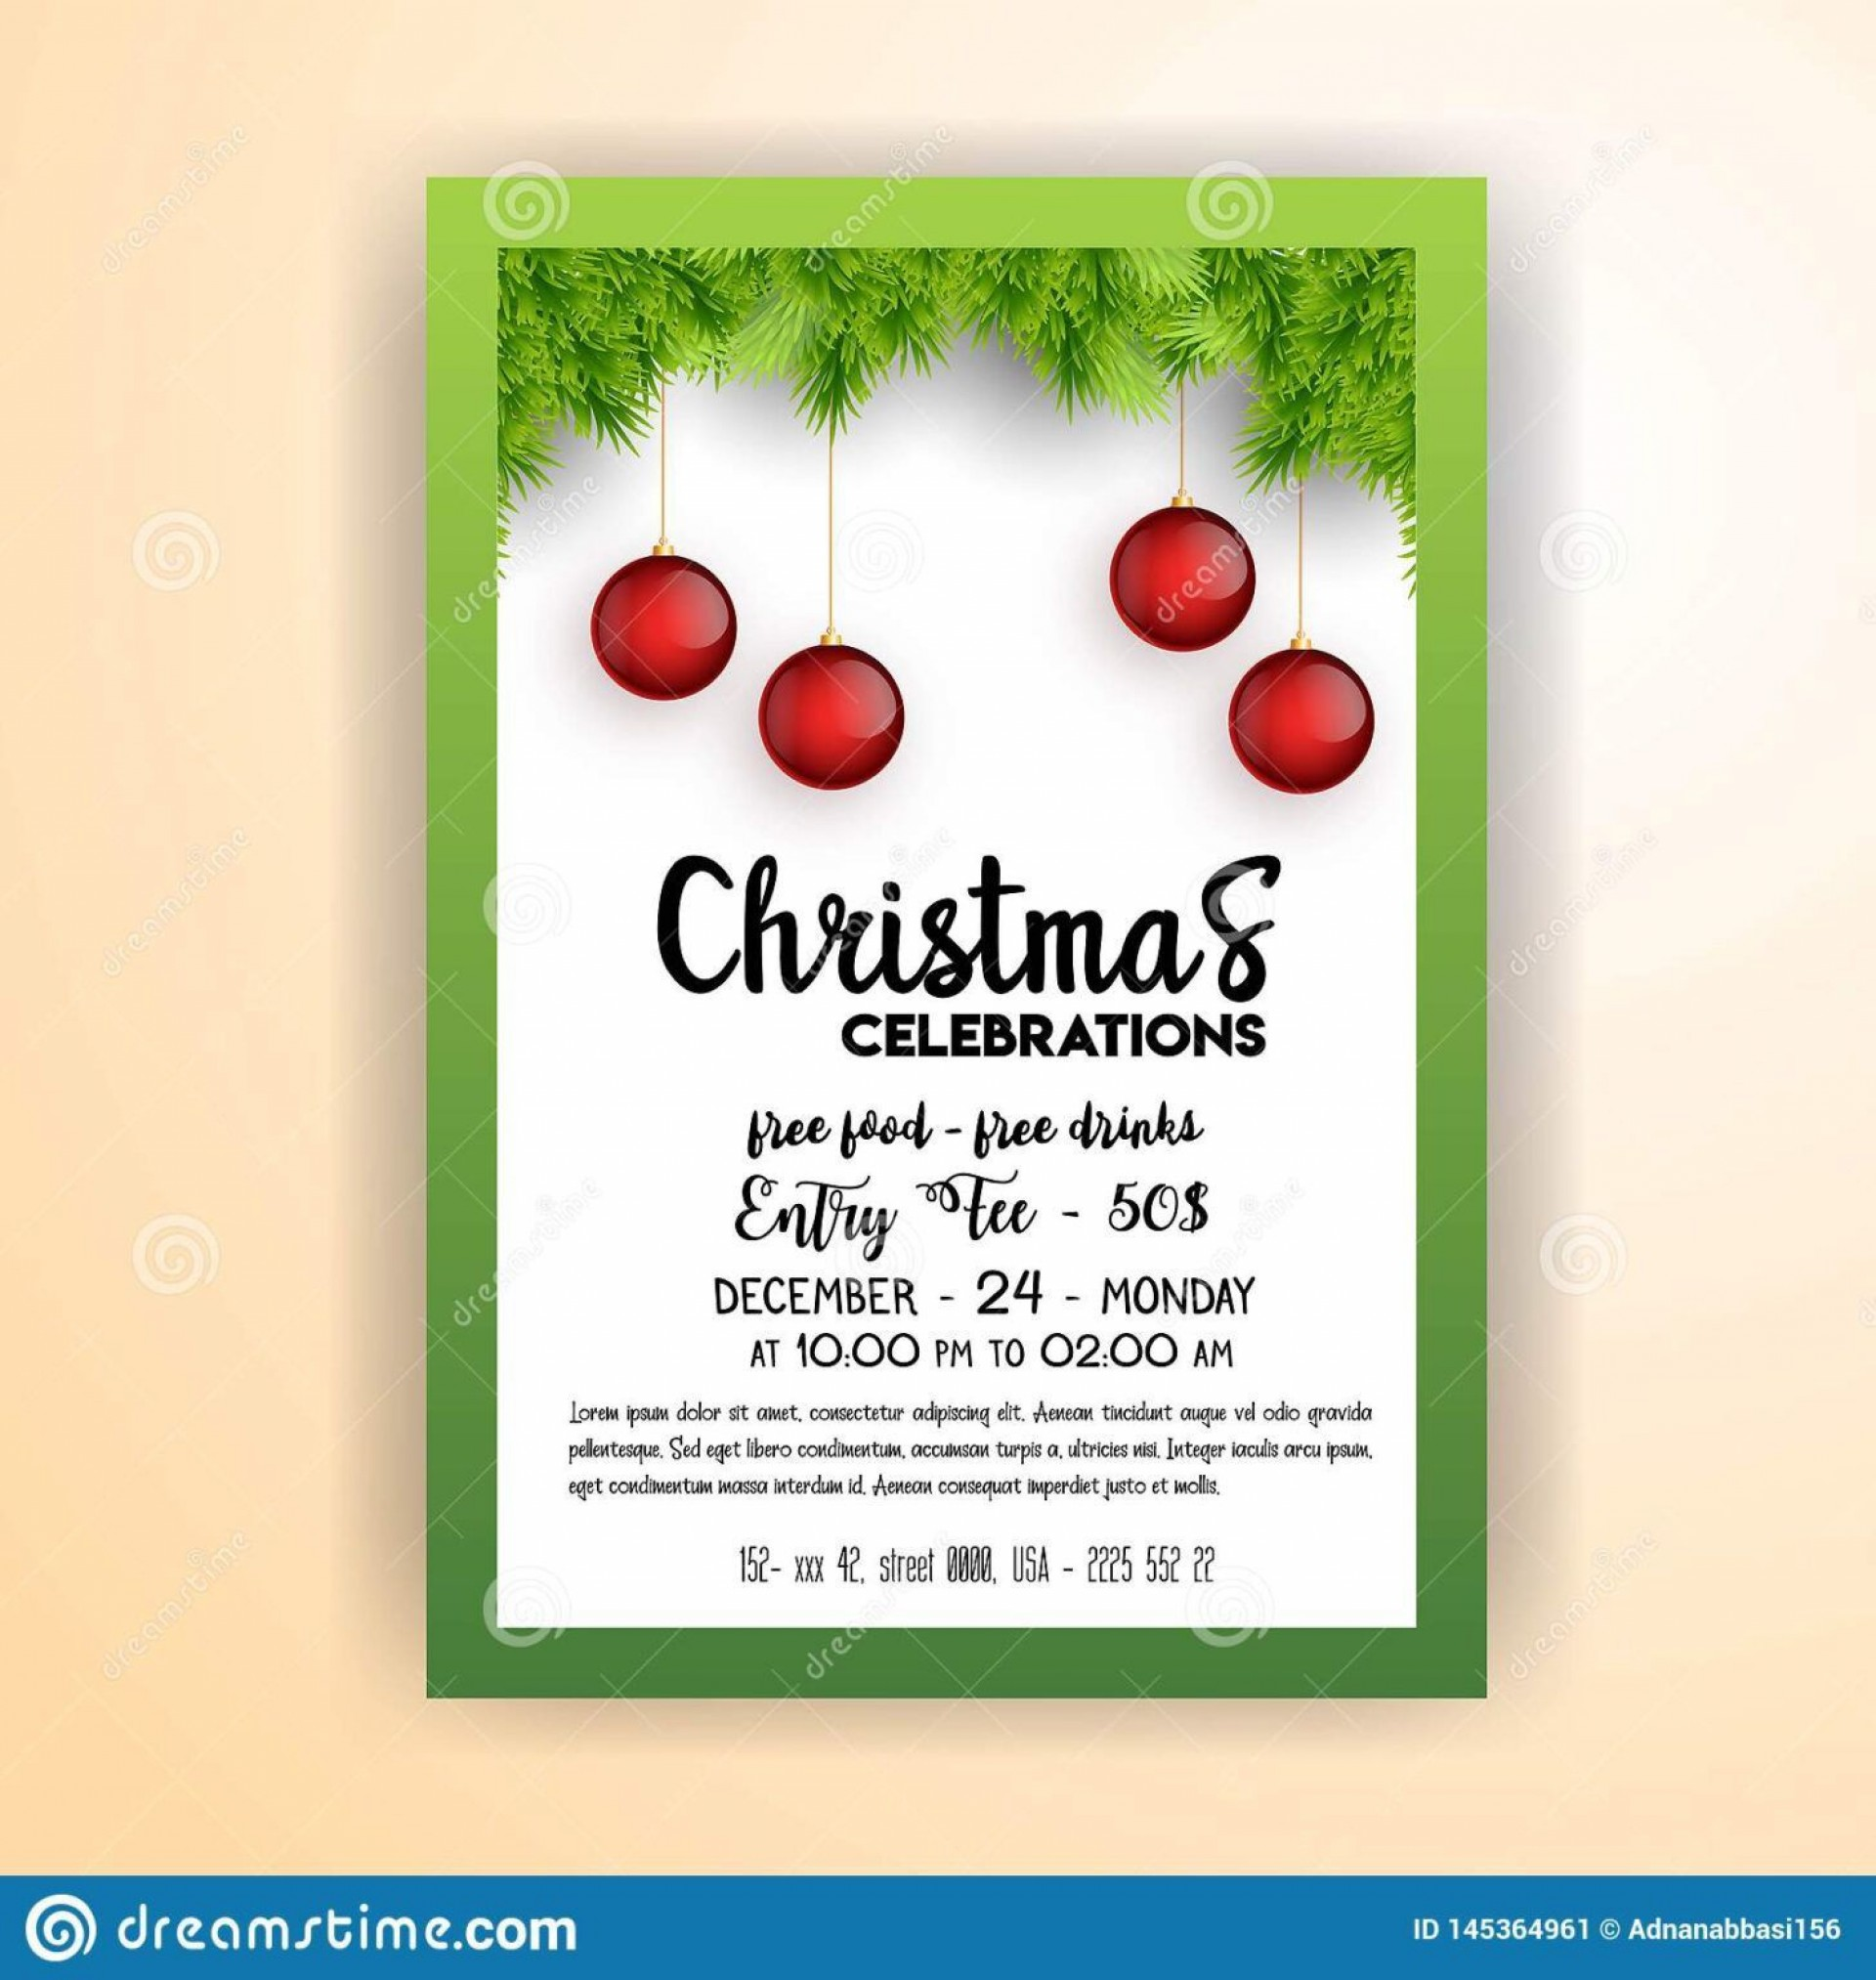 000 Excellent Christma Party Flyer Template Free High Def  Company Invitation Printable Word1920